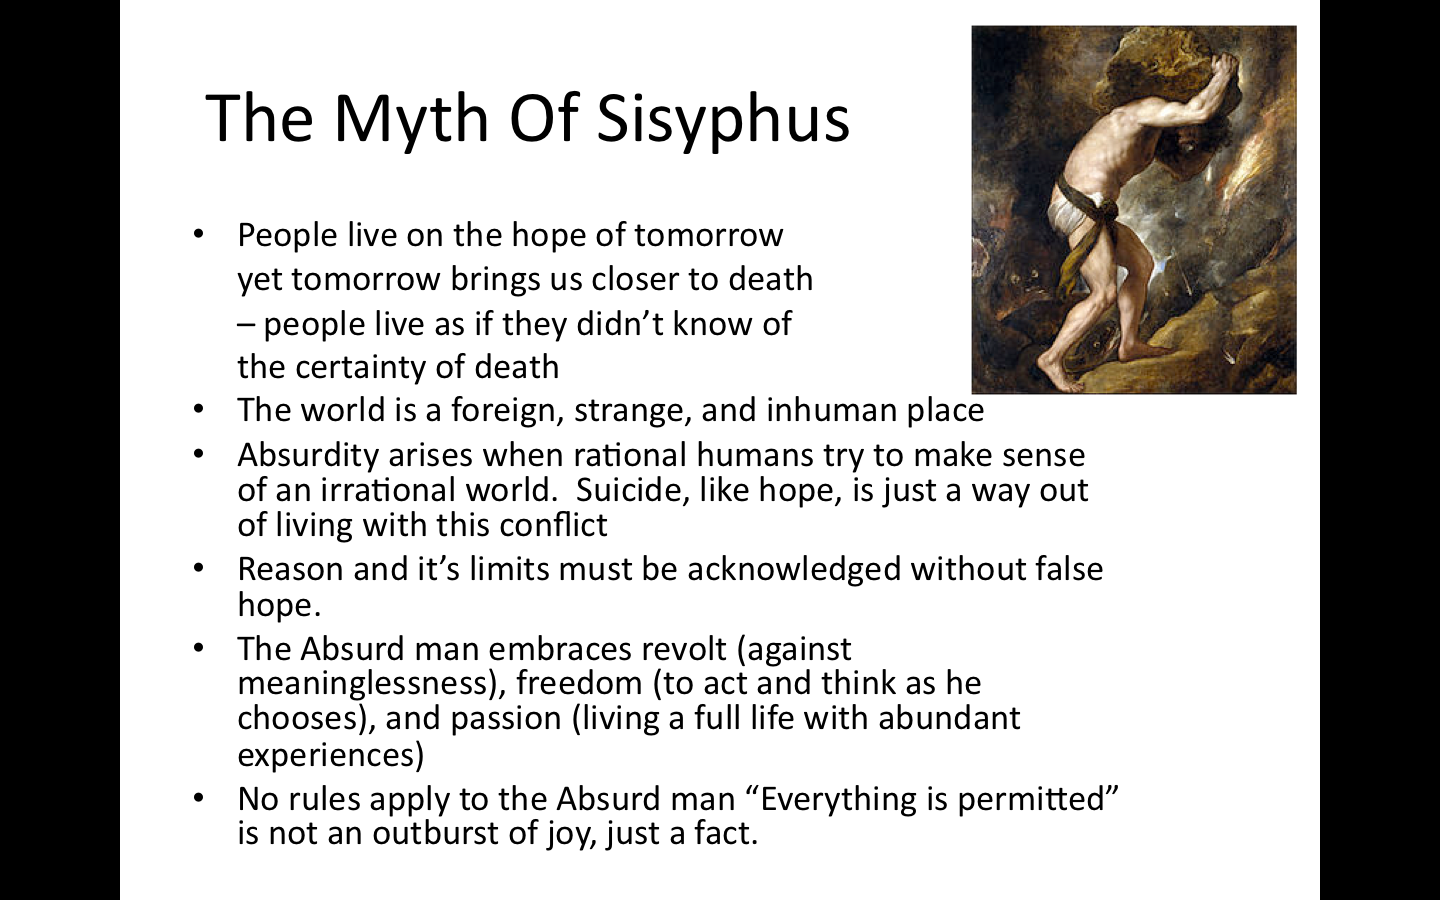 the myth of sisyphus essay questions